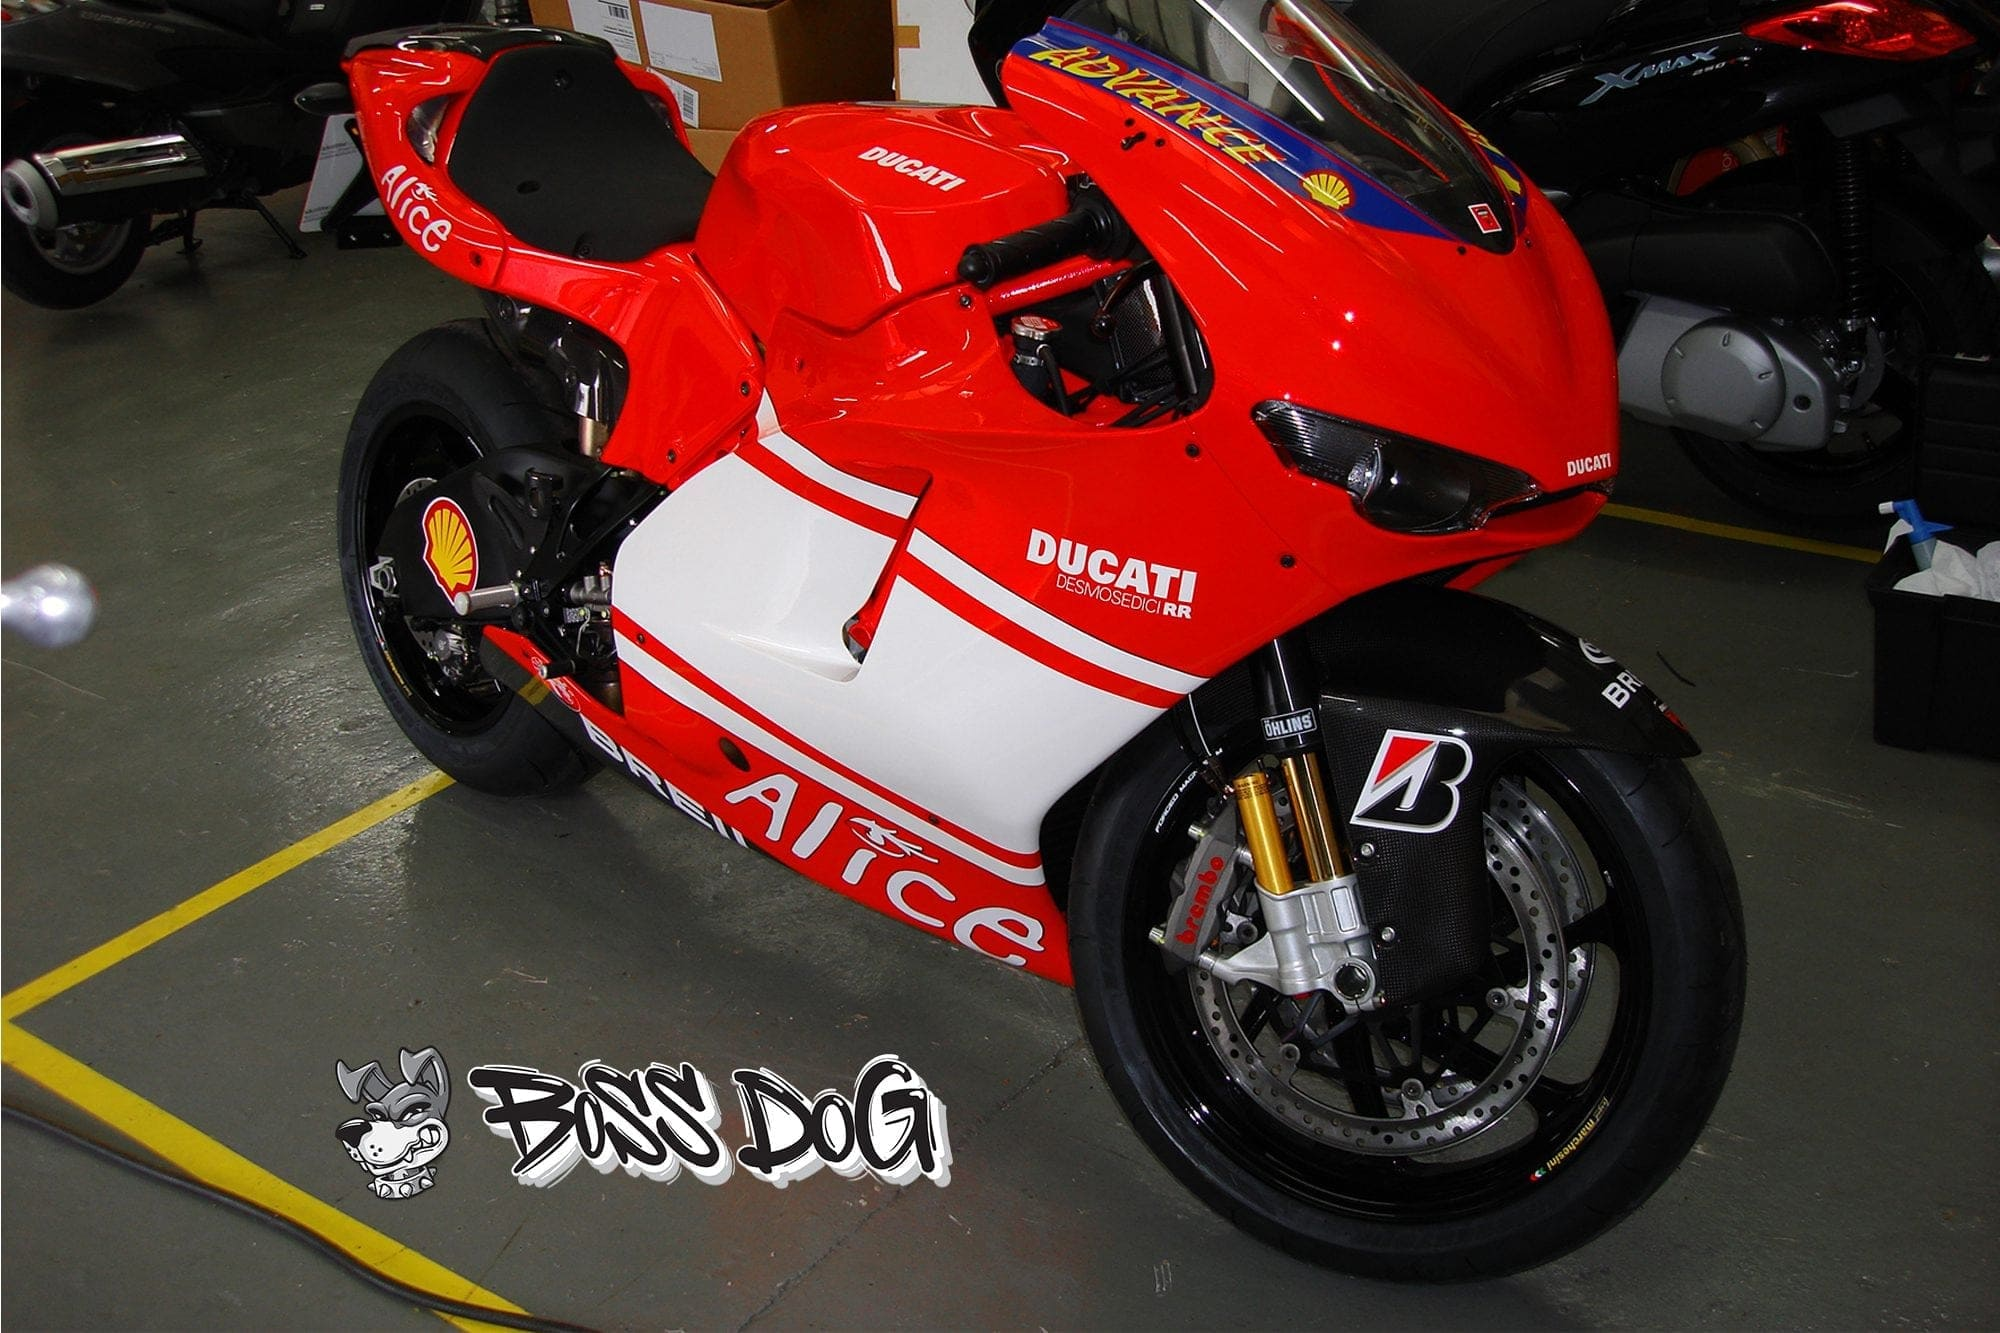 Ducati motorbike wrapped in gloss red and white